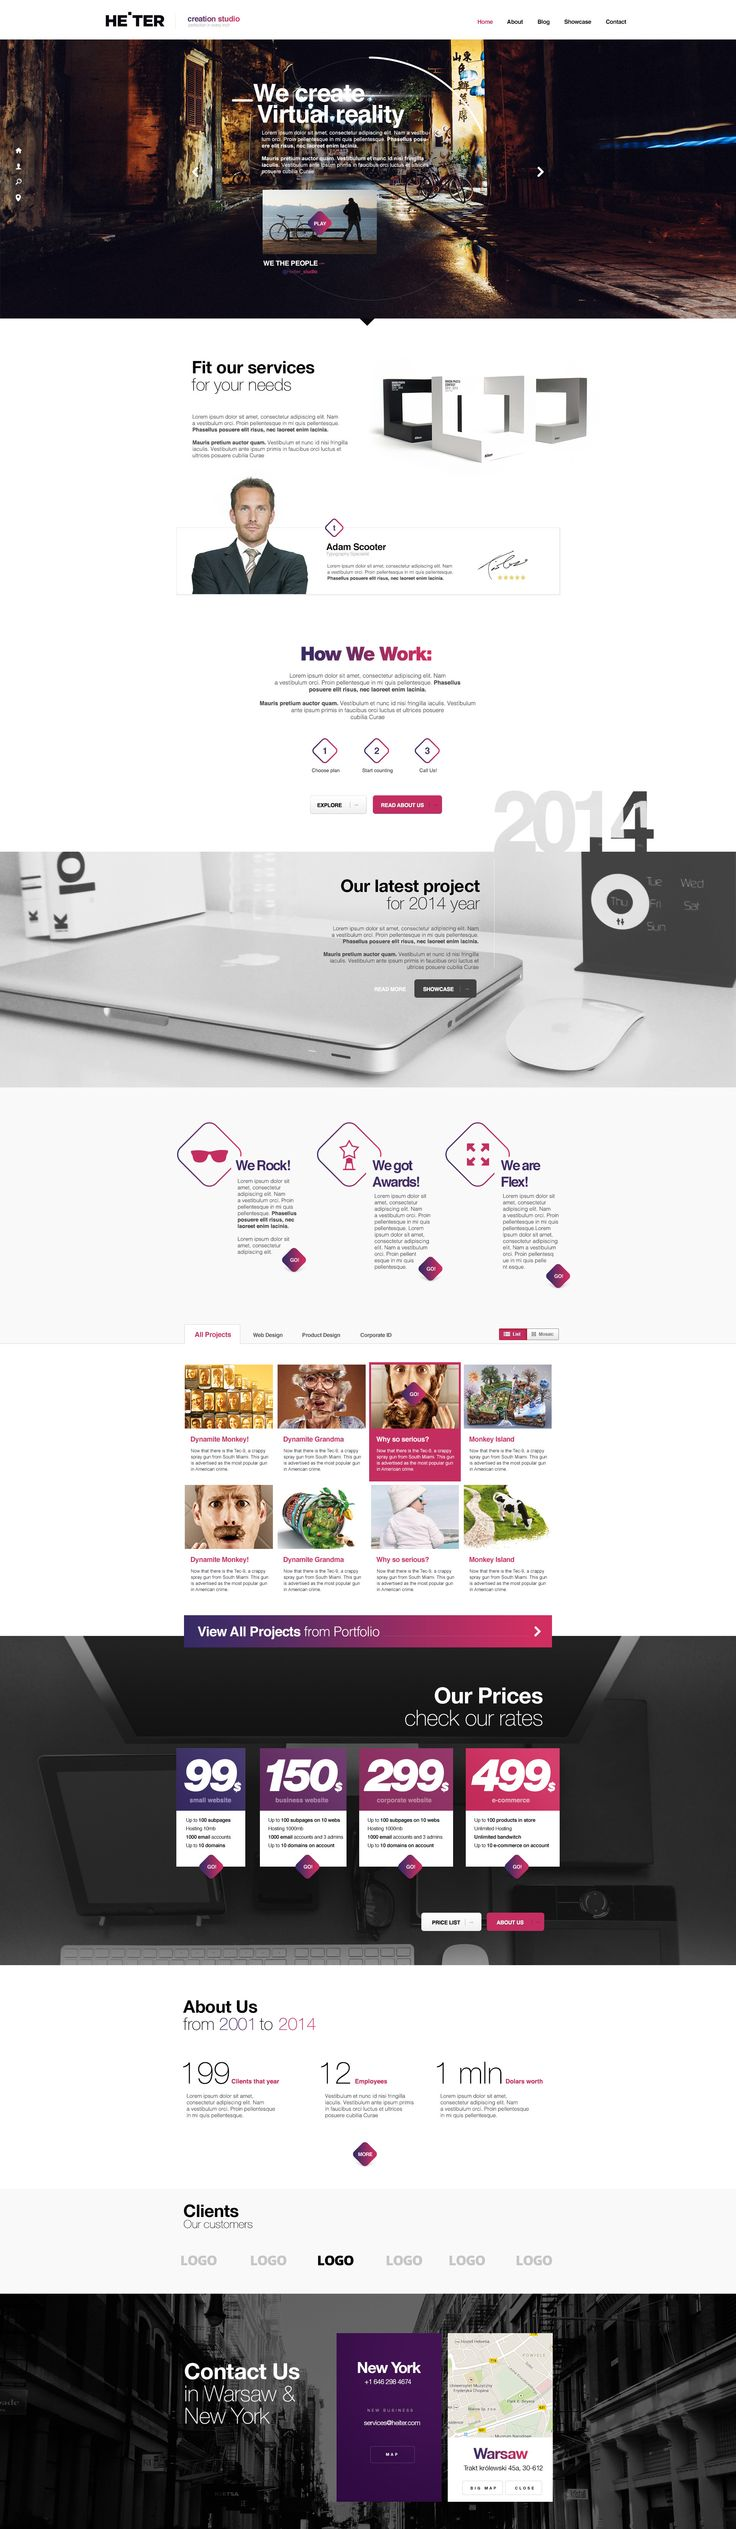 Heiter - Fresh Design. Excellent for Business (Business)